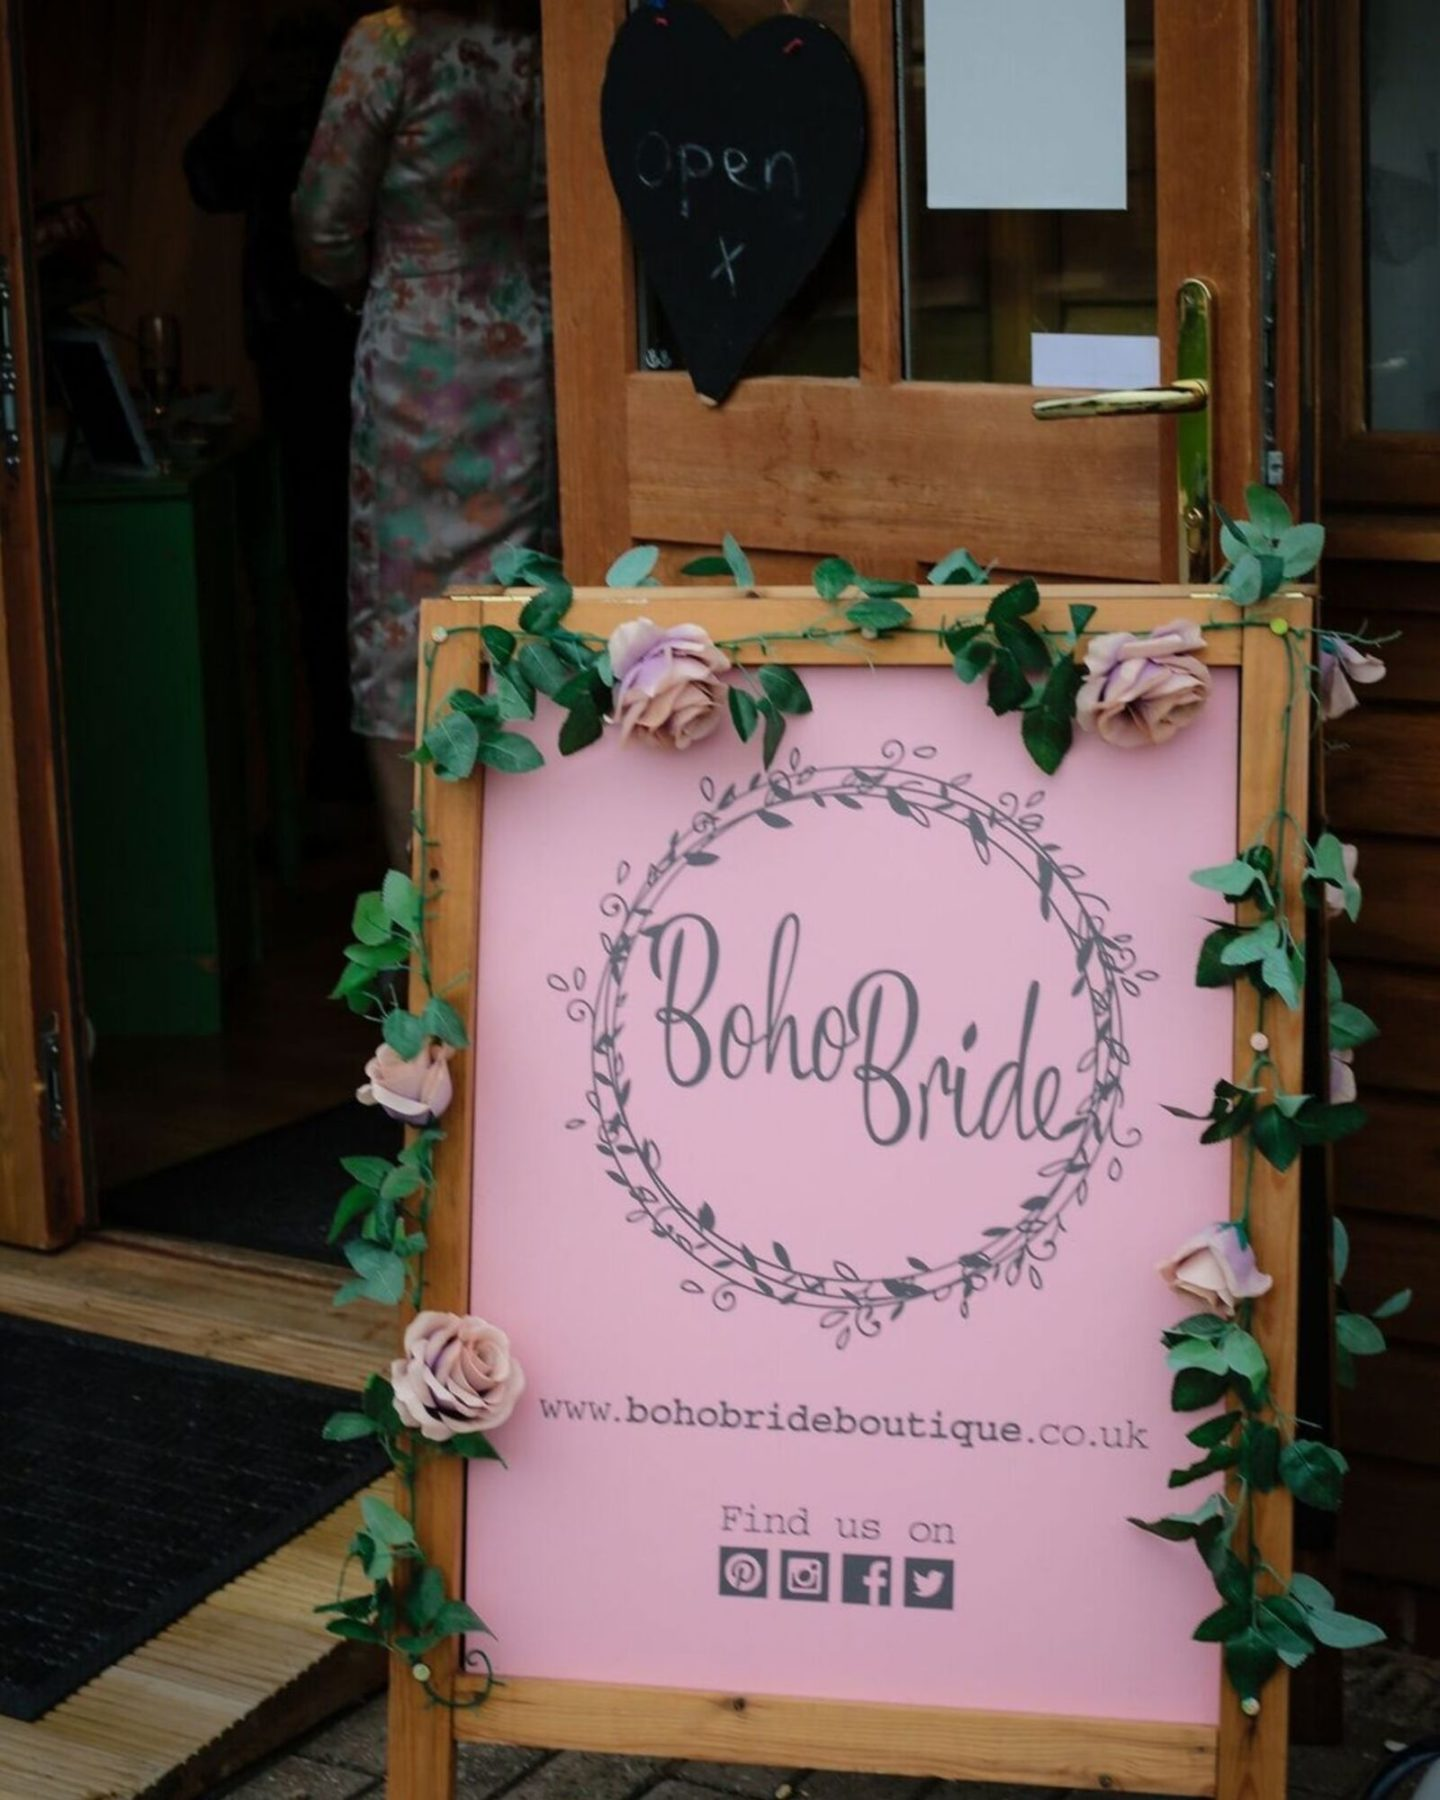 Boho Bride boutique sign out the front of the shop